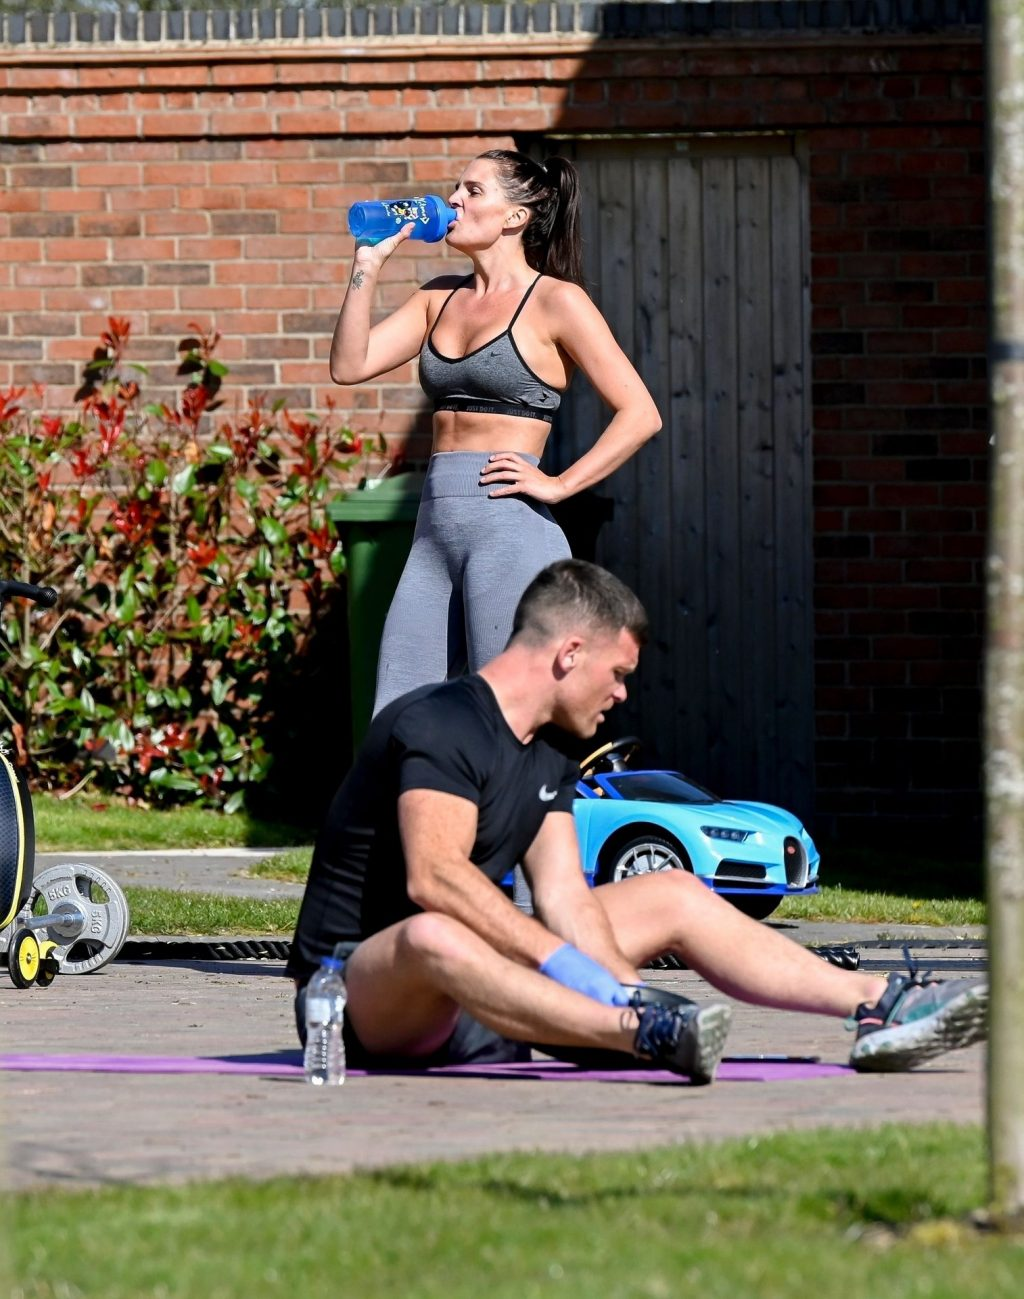 Danielle Lloyd Circuit Trains on Her Drive with Family (36 Photos)